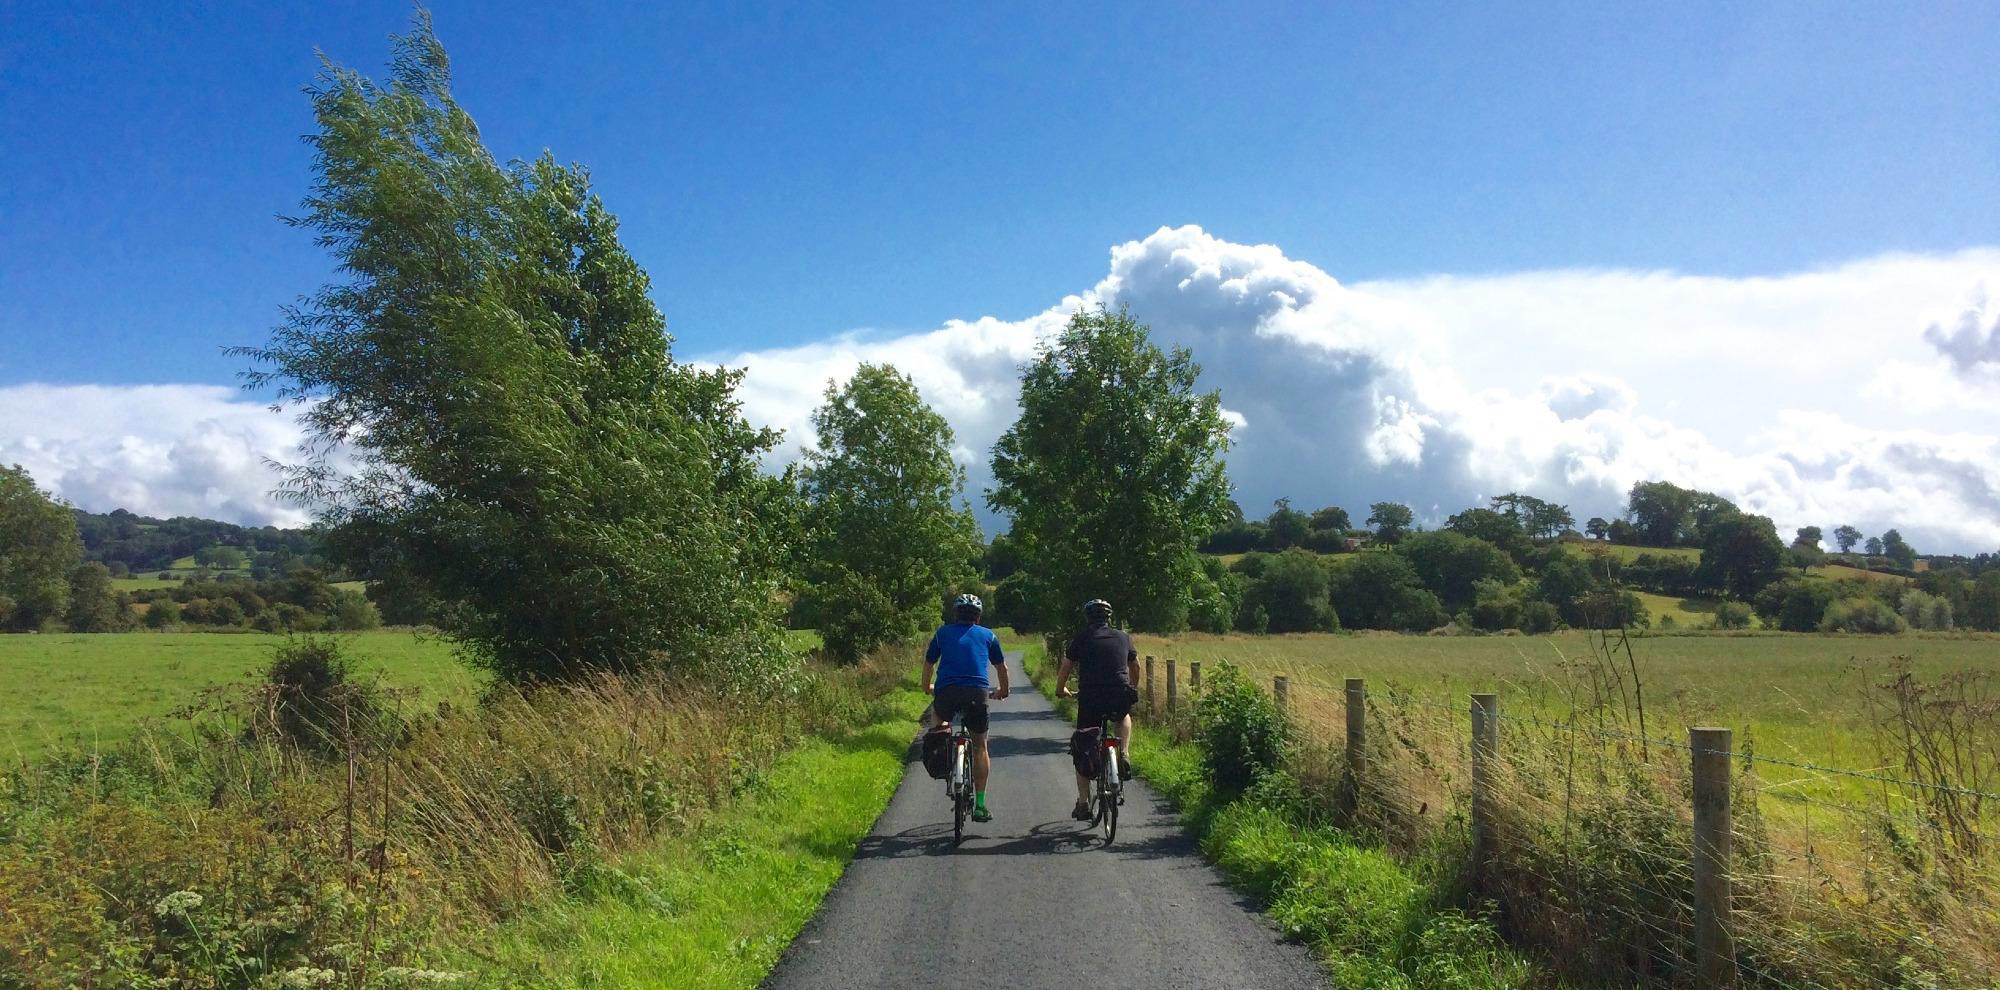 3 day Wye Valley cycling holiday in England and Wales